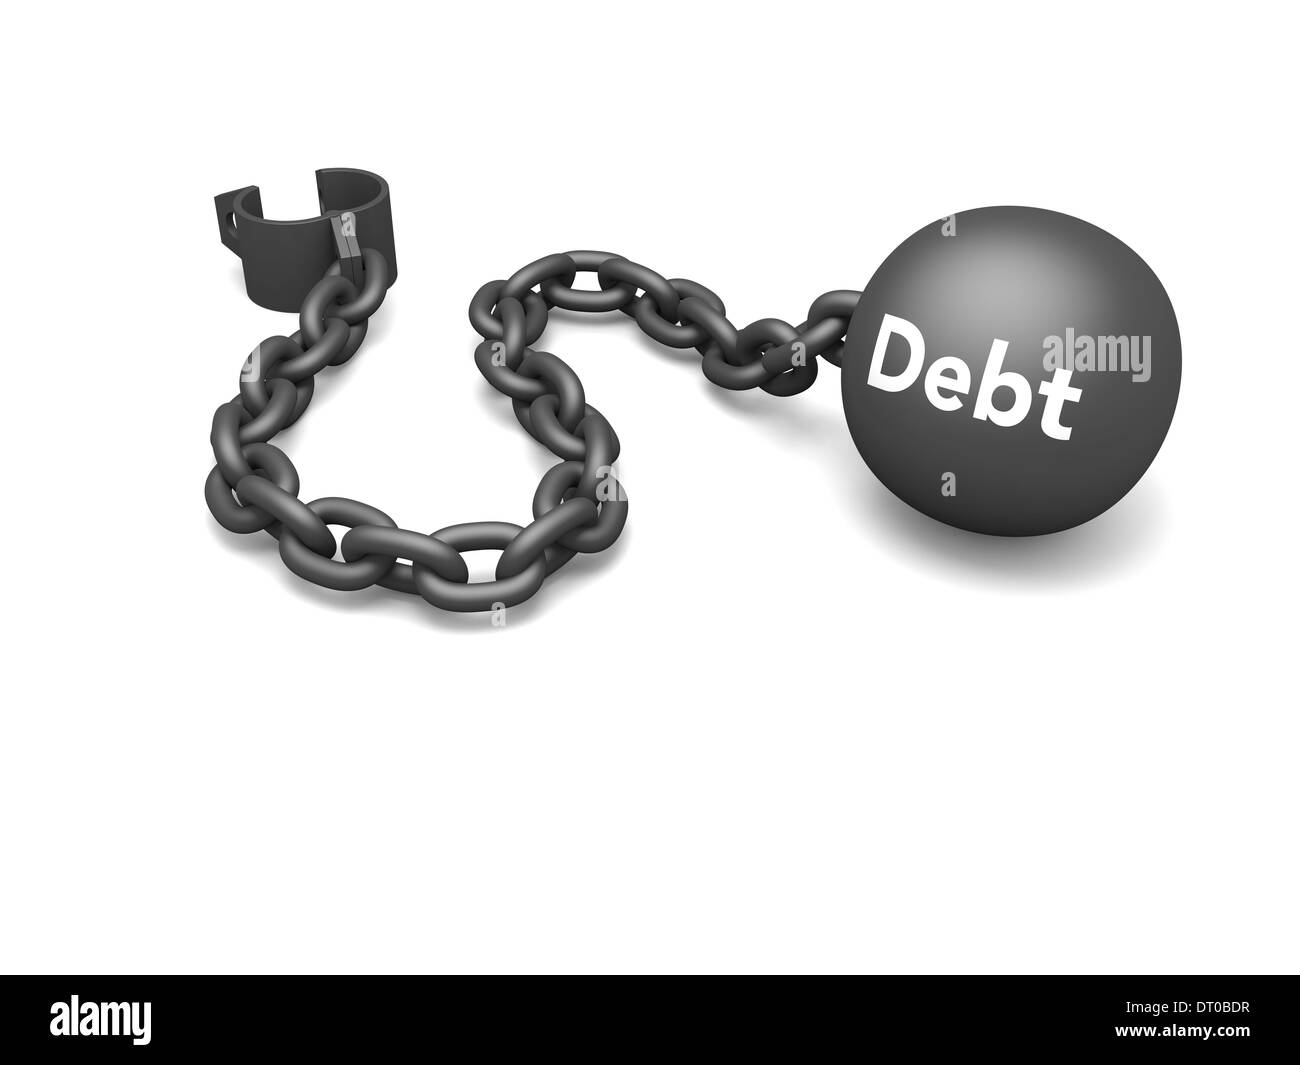 Prisoner shackle with word 'debt' on the iron ball, concept of escaping debt and dependency on credit. Isolated on white background. - Stock Image